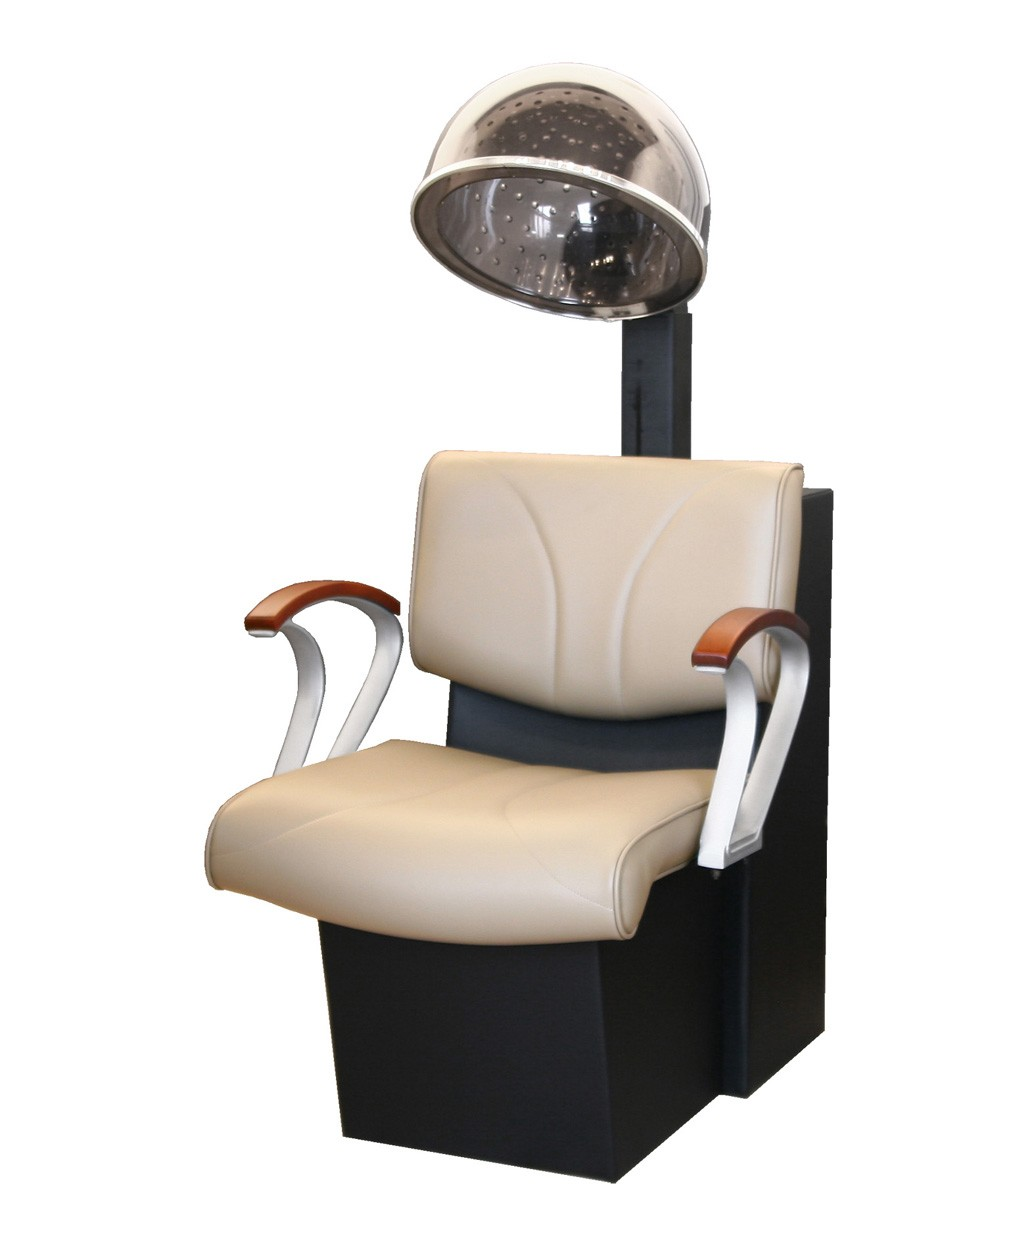 8121D Chelsea BA Dryer Chair with Collins SolAir Dryer